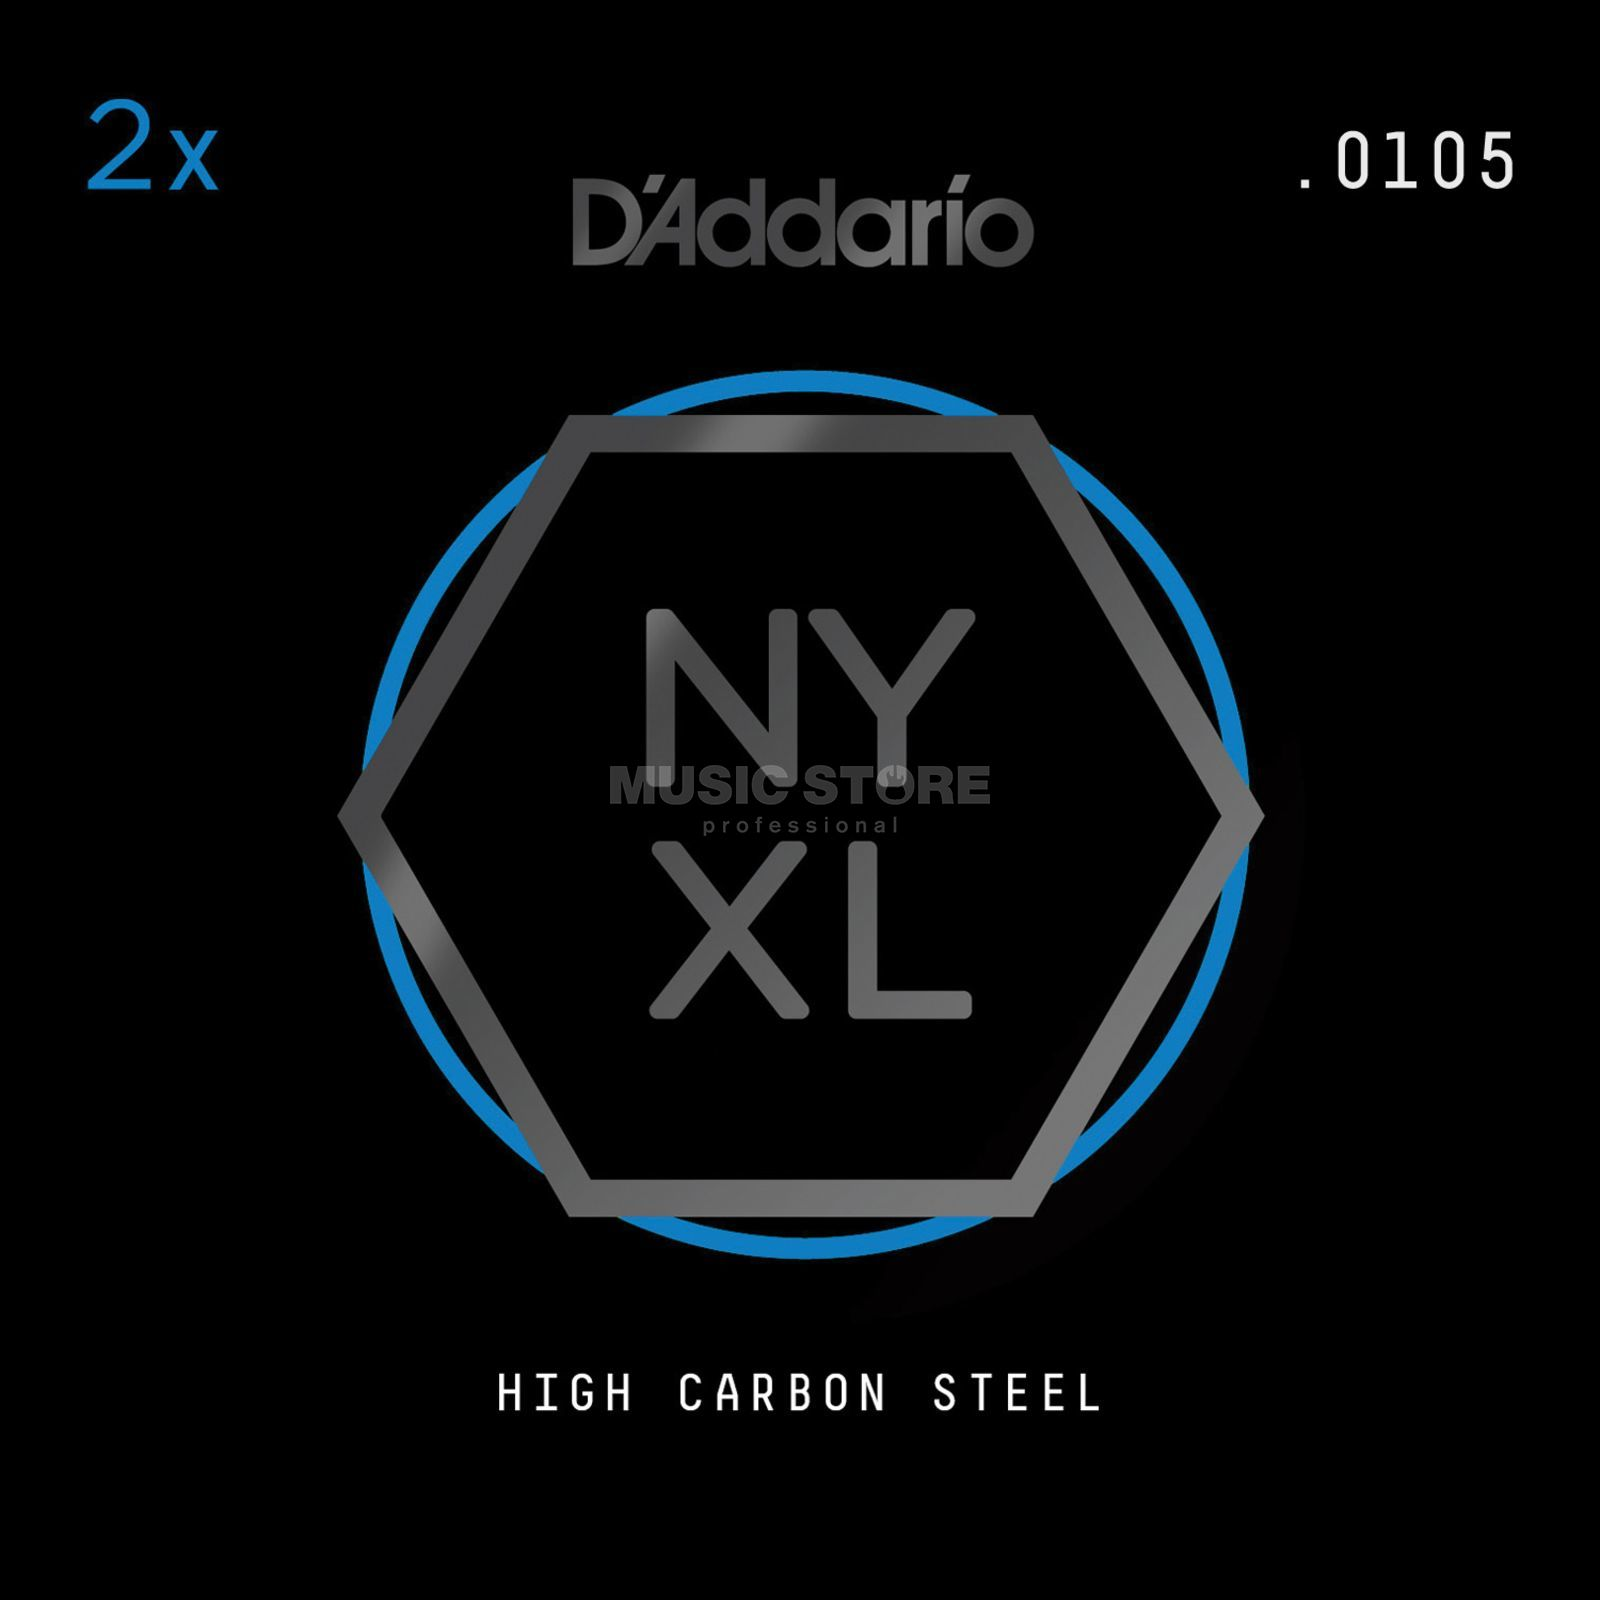 D'Addario NYPL0105 Plain Single String 2-Pack - High Carbon Steel Produktbillede